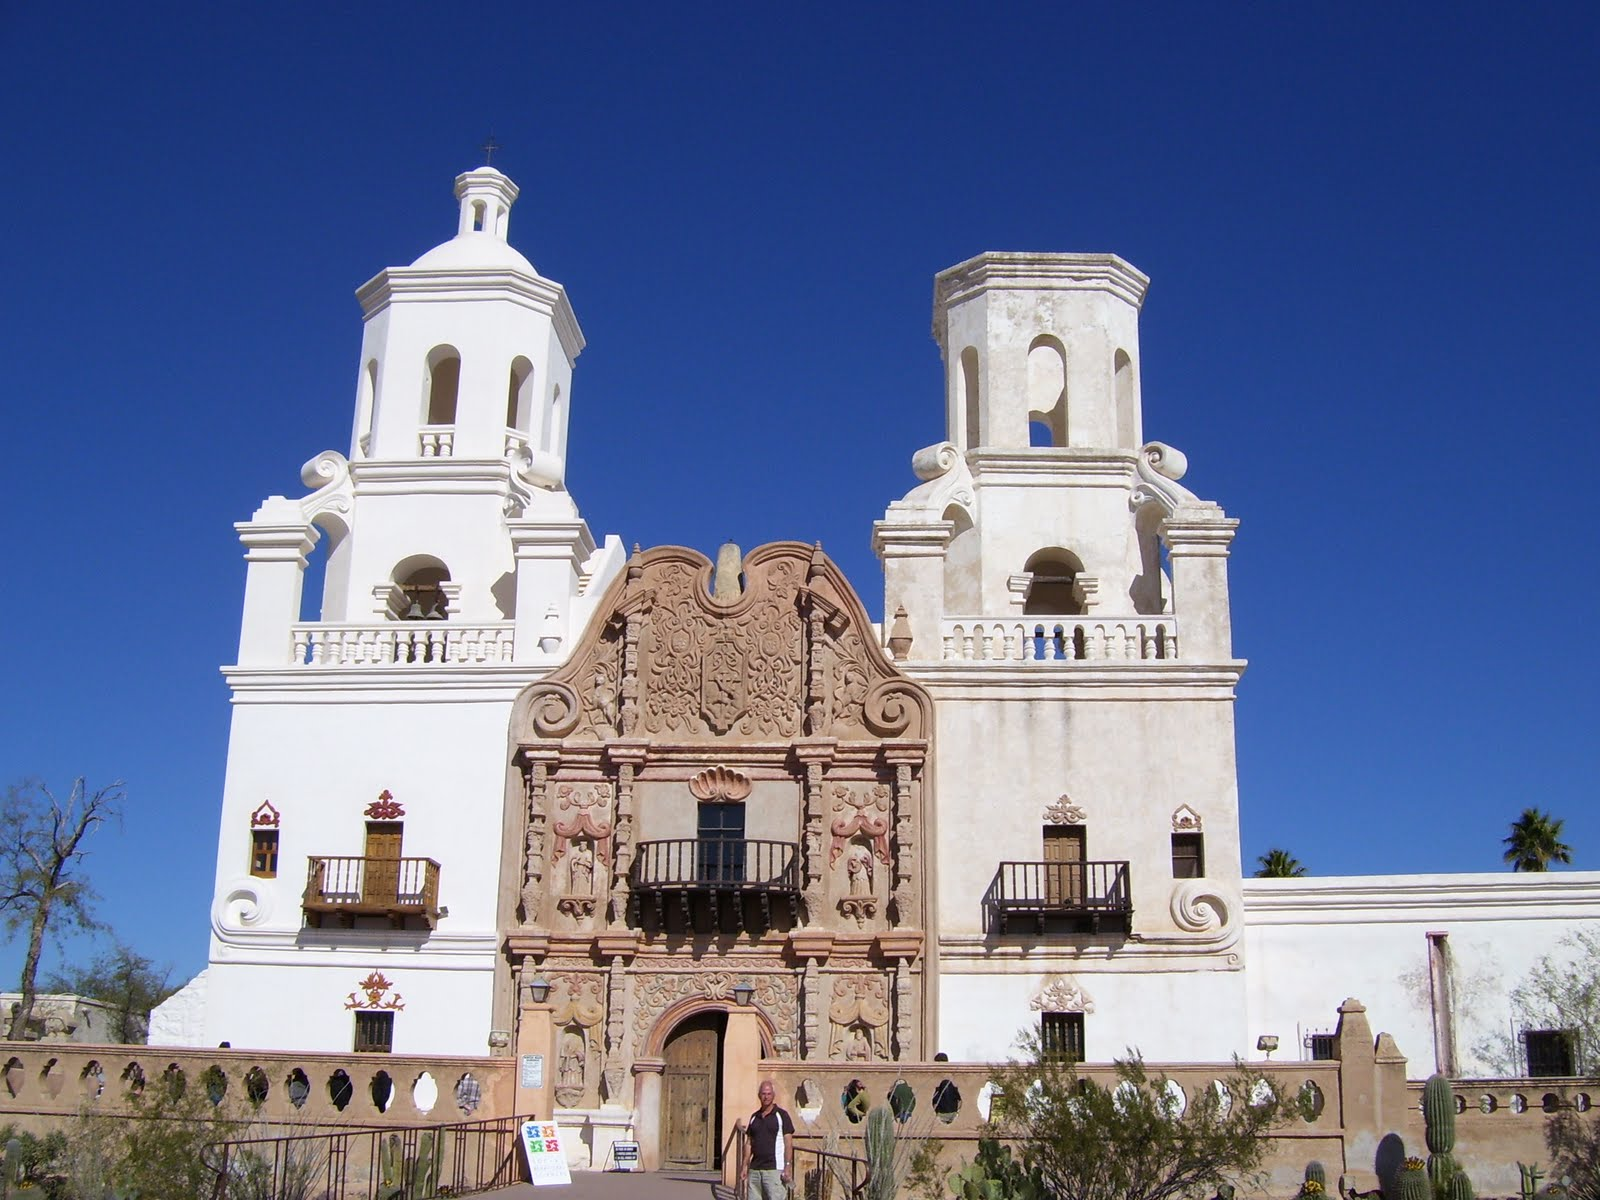 Trent and Teresa: Mission San Xavier